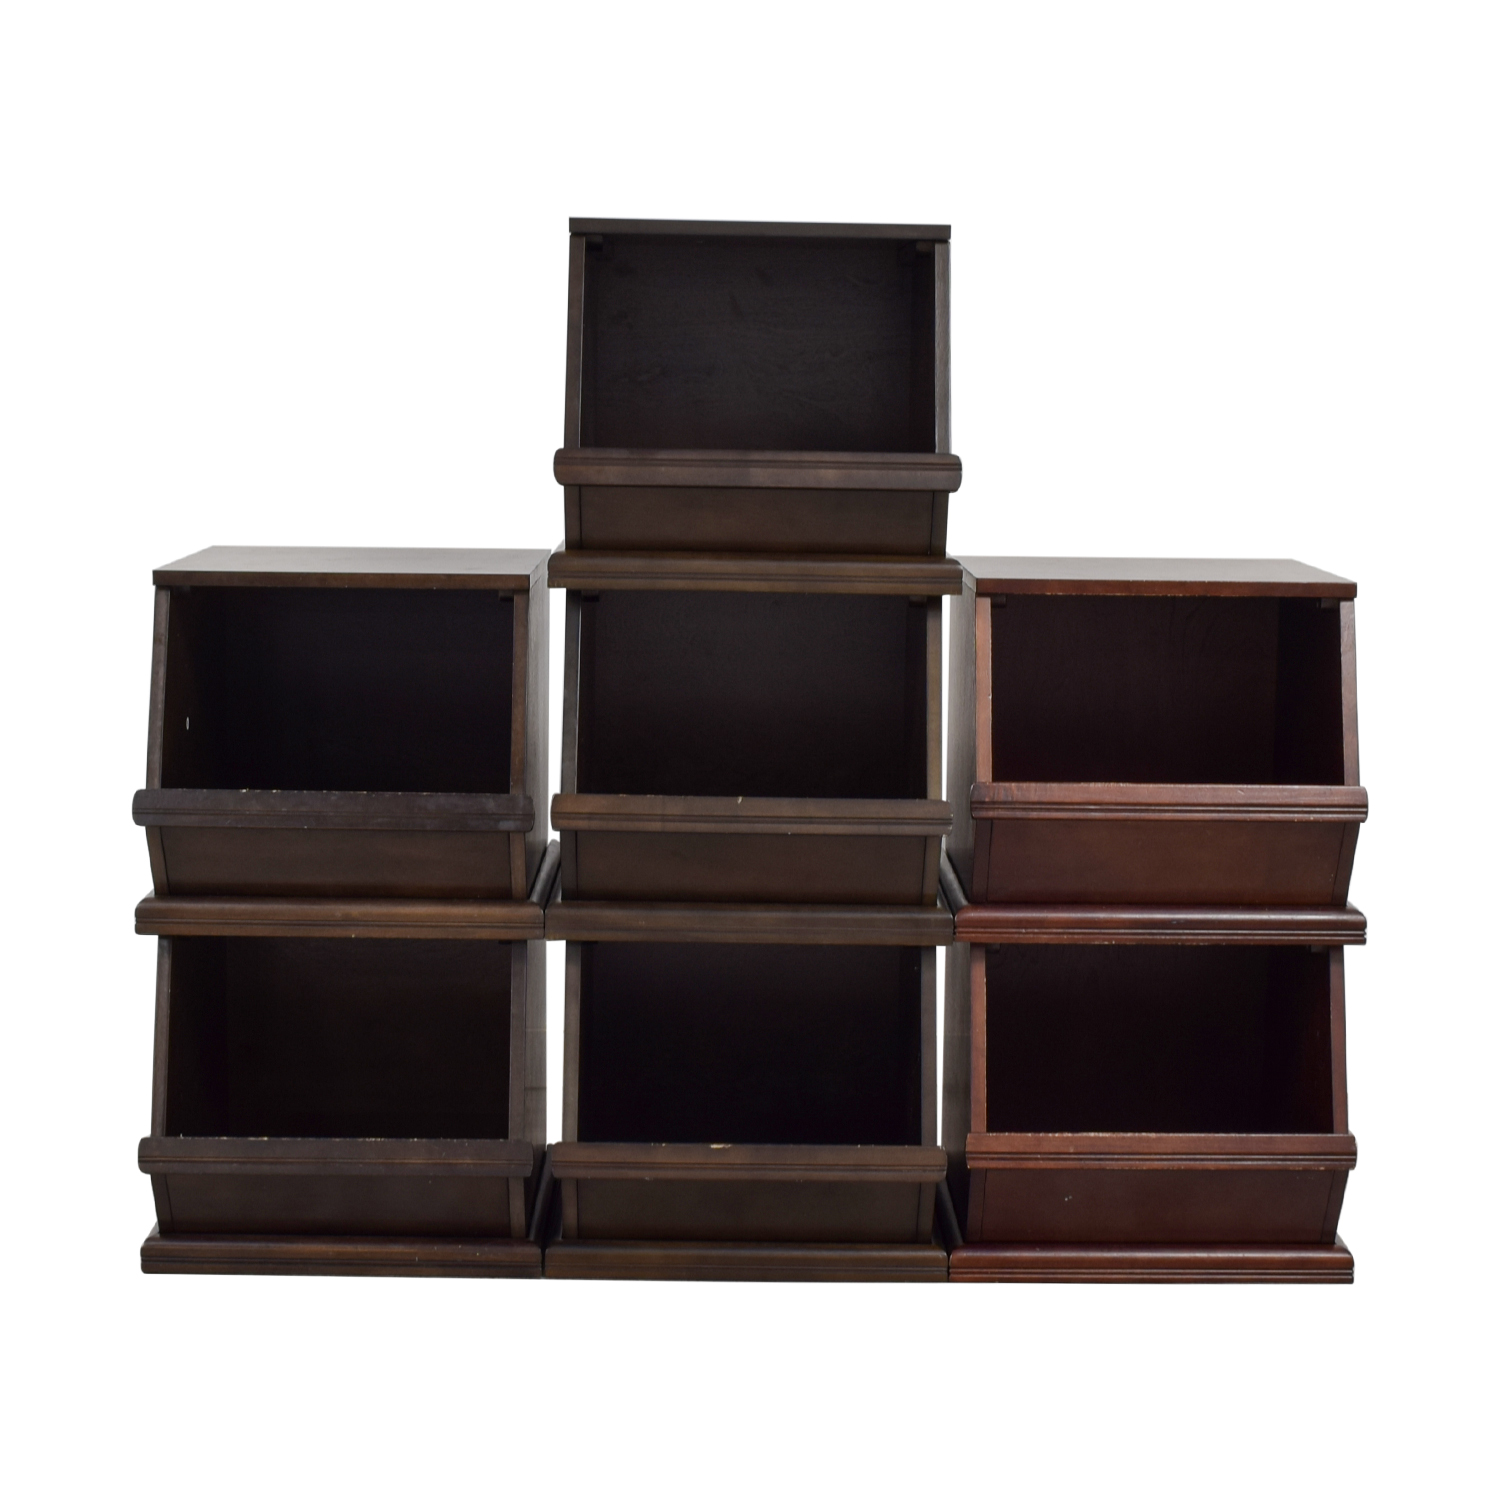 Land of Nod Land of Nod Storage Palooza Bins Dark Brown, Dark Cherry